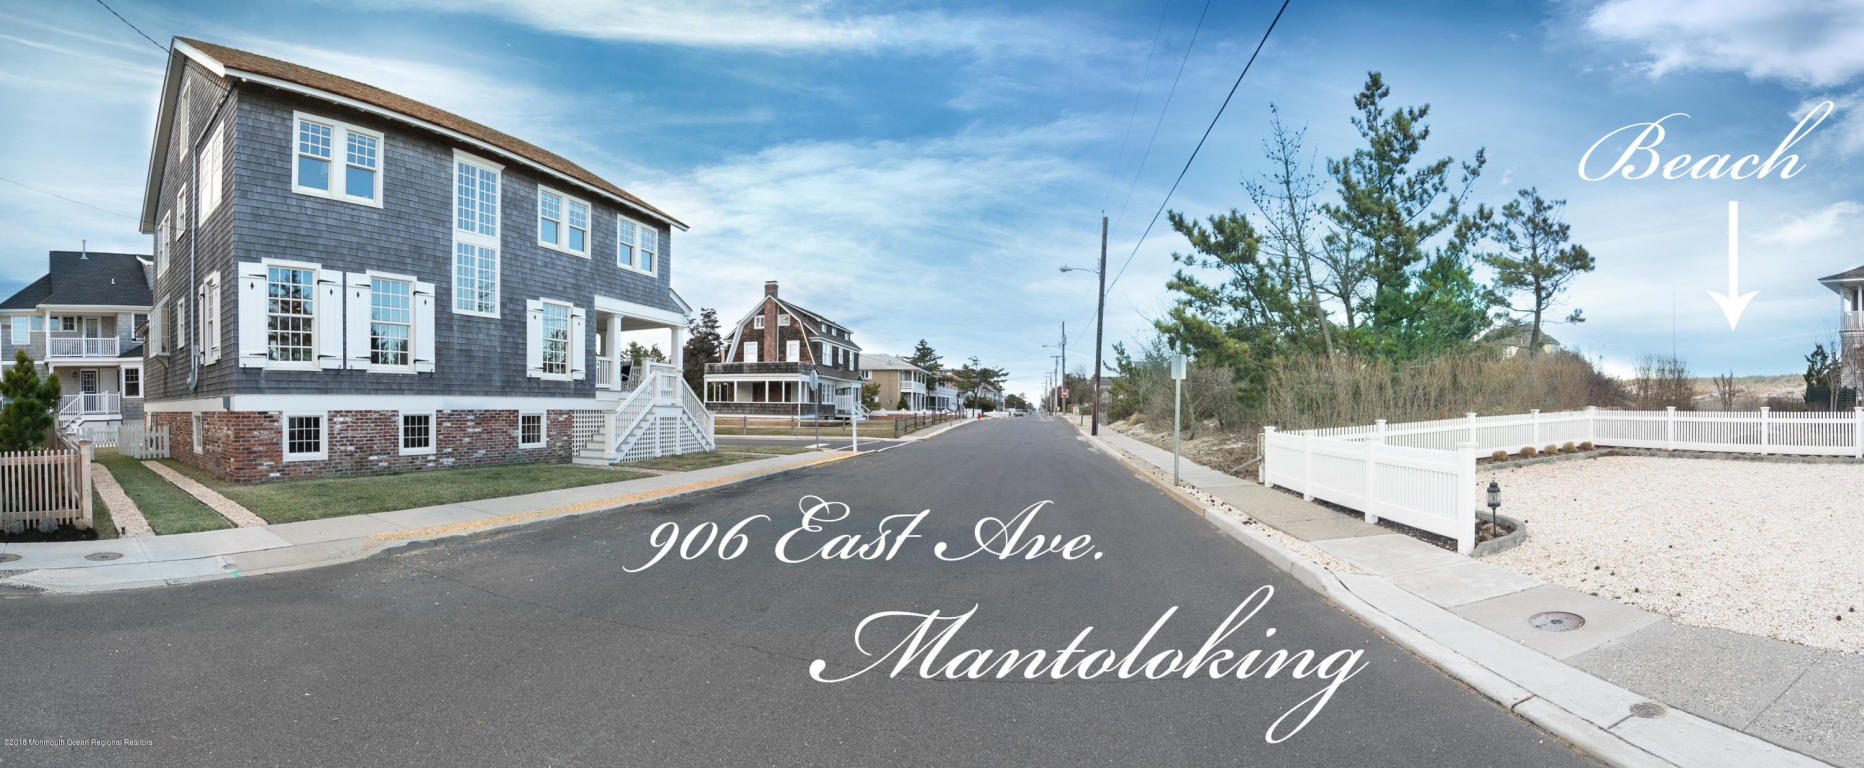 906  East Avenue,  Mantoloking, NJ